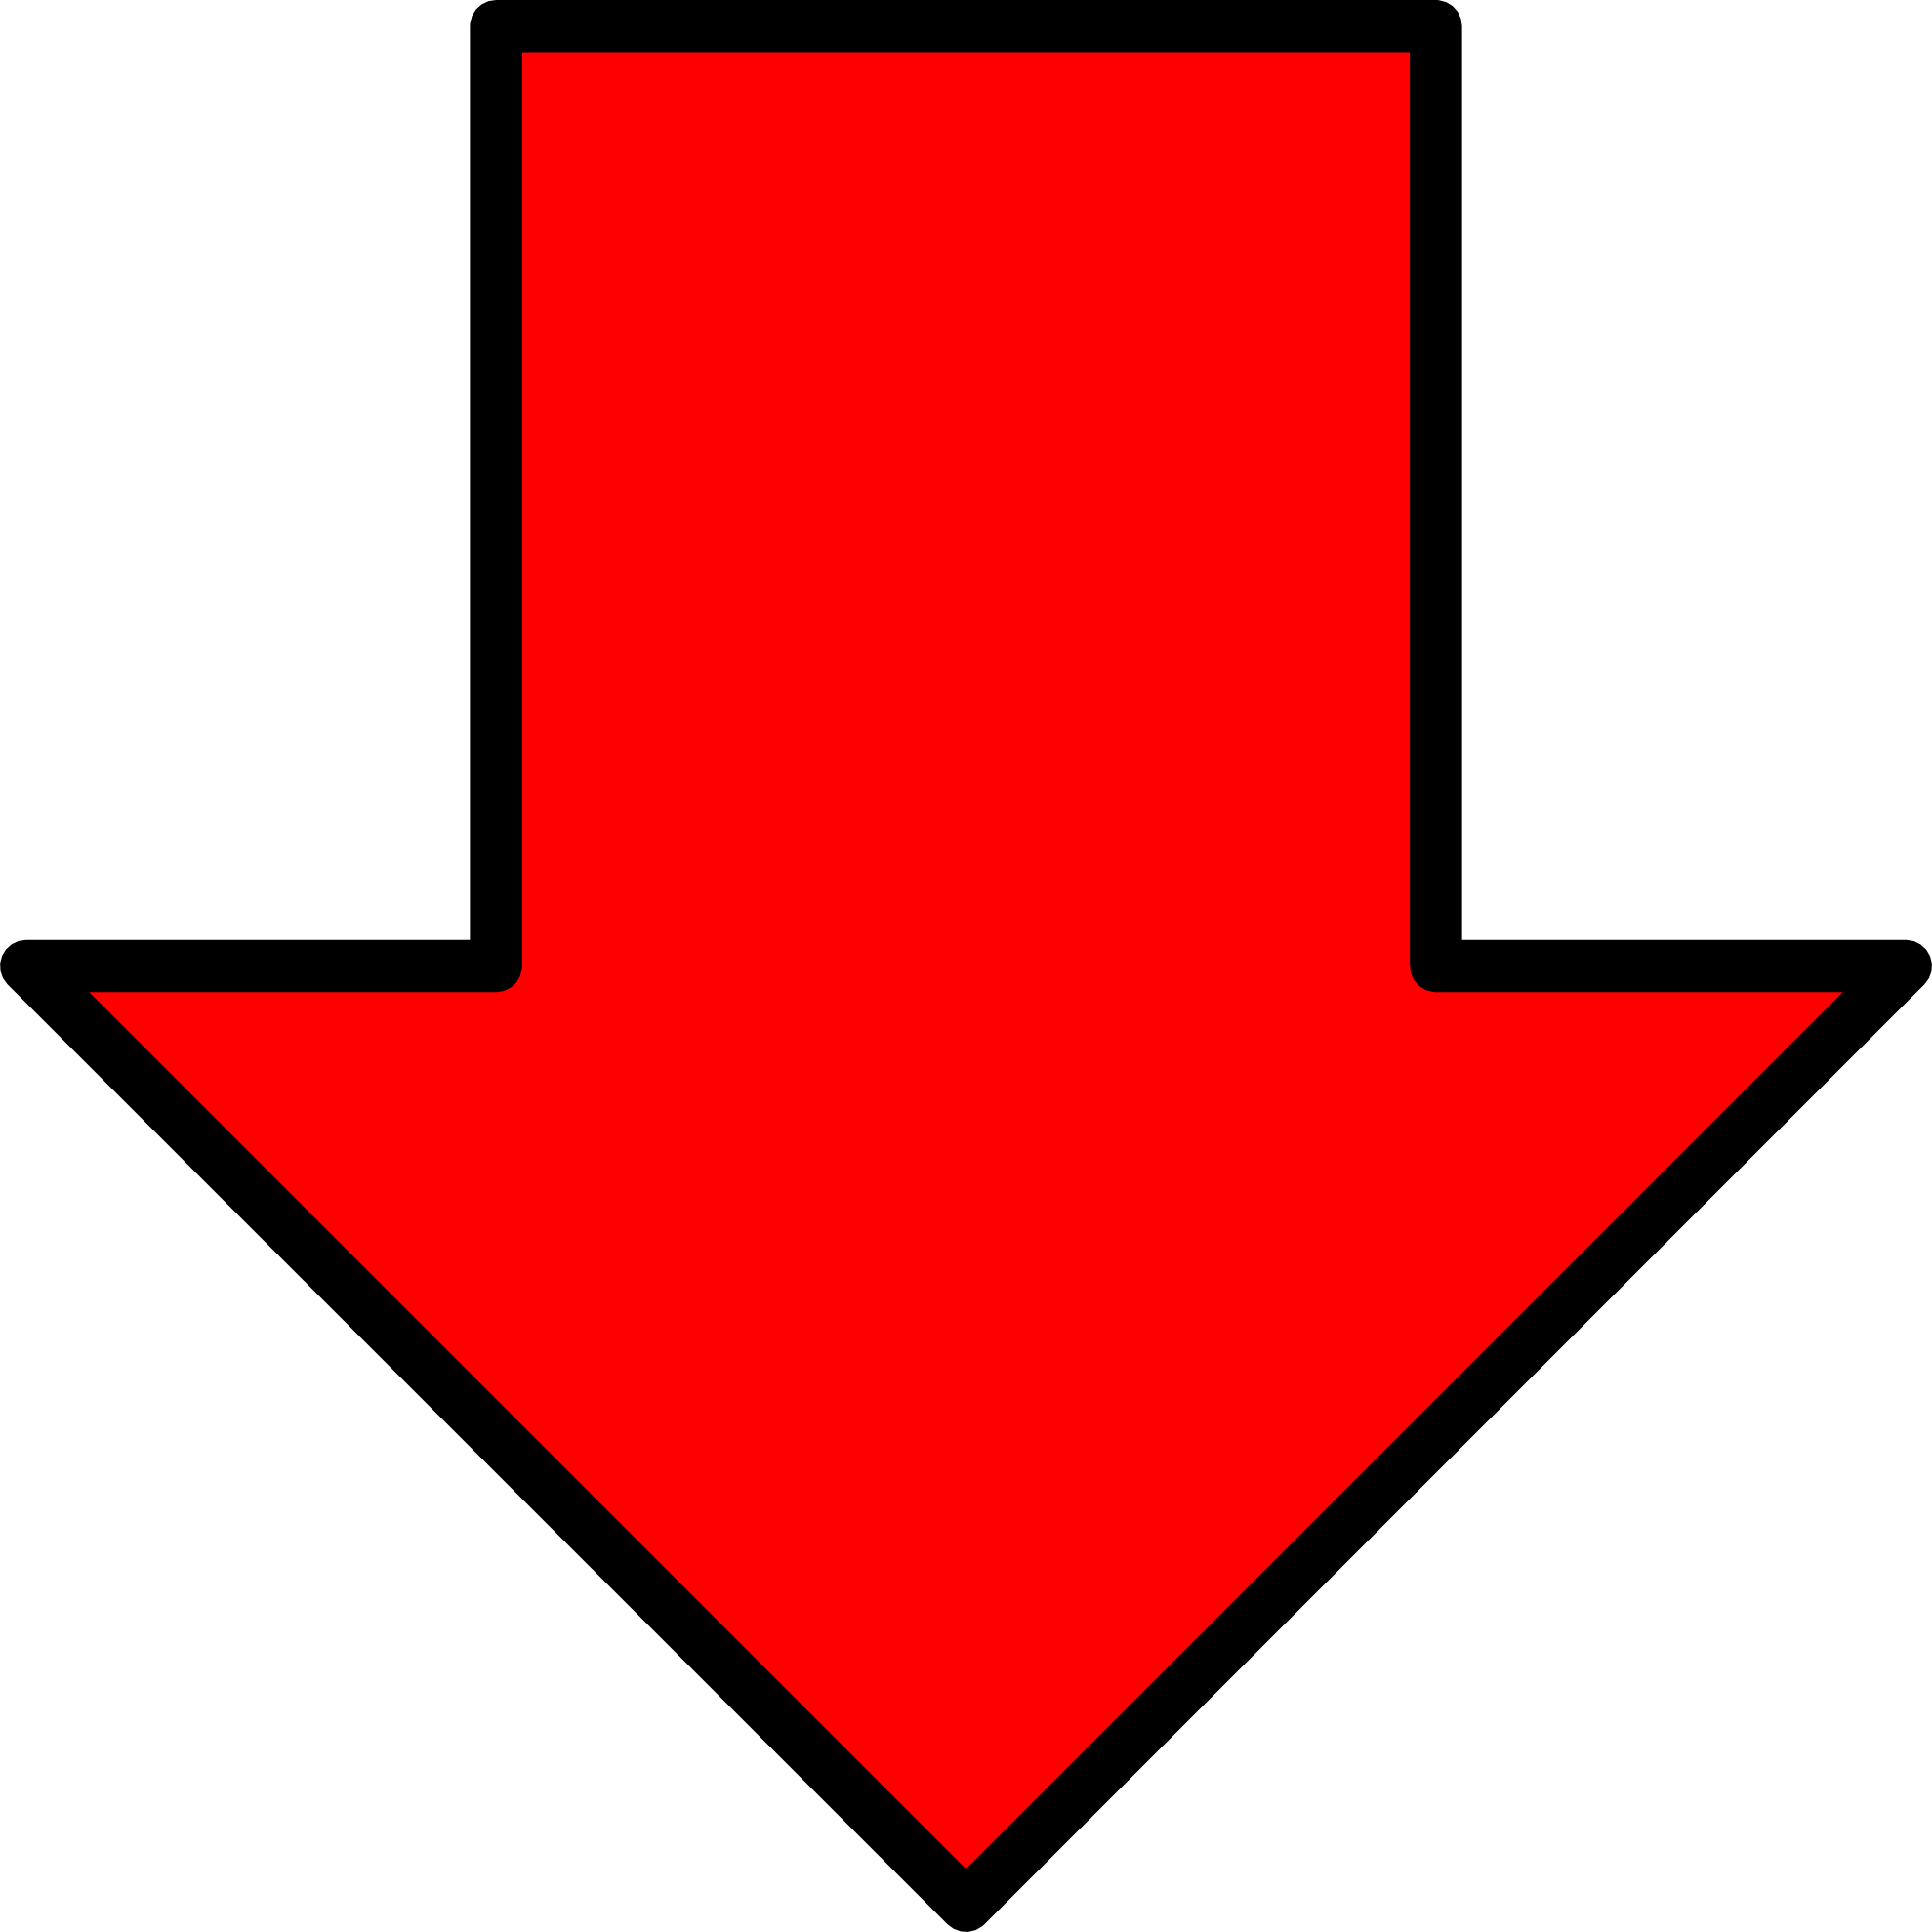 Free Red Down Arrow Png, Download Free Clip Art, Free Clip.